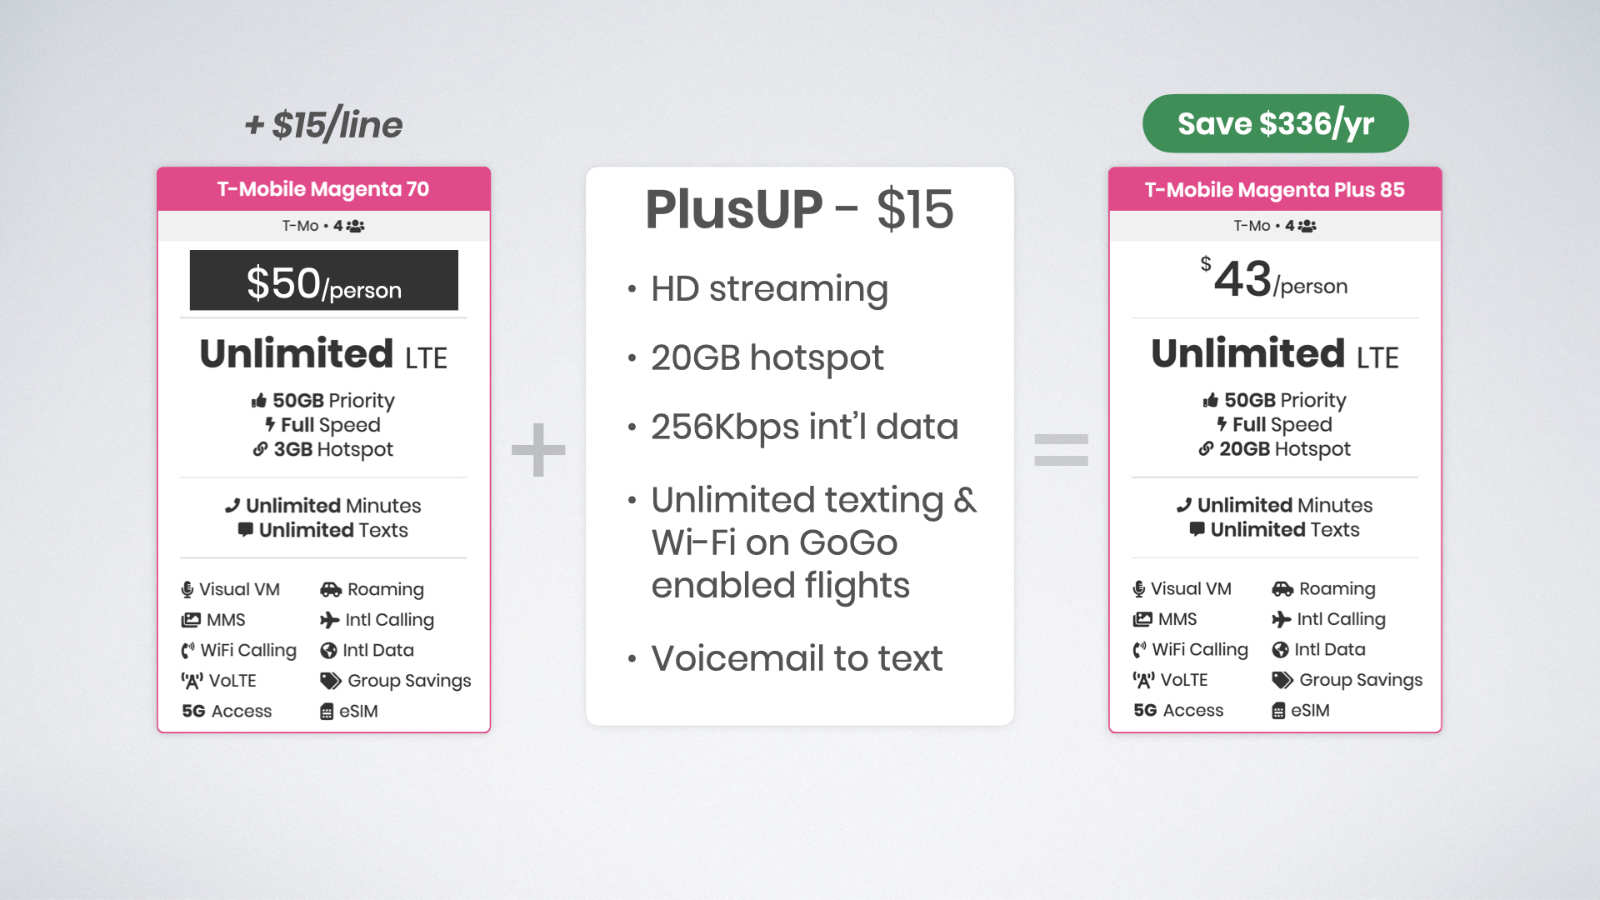 Bundling the PlusUP add-on with Magenta Plus makes it eligible for T-Mobile's multi-line discount